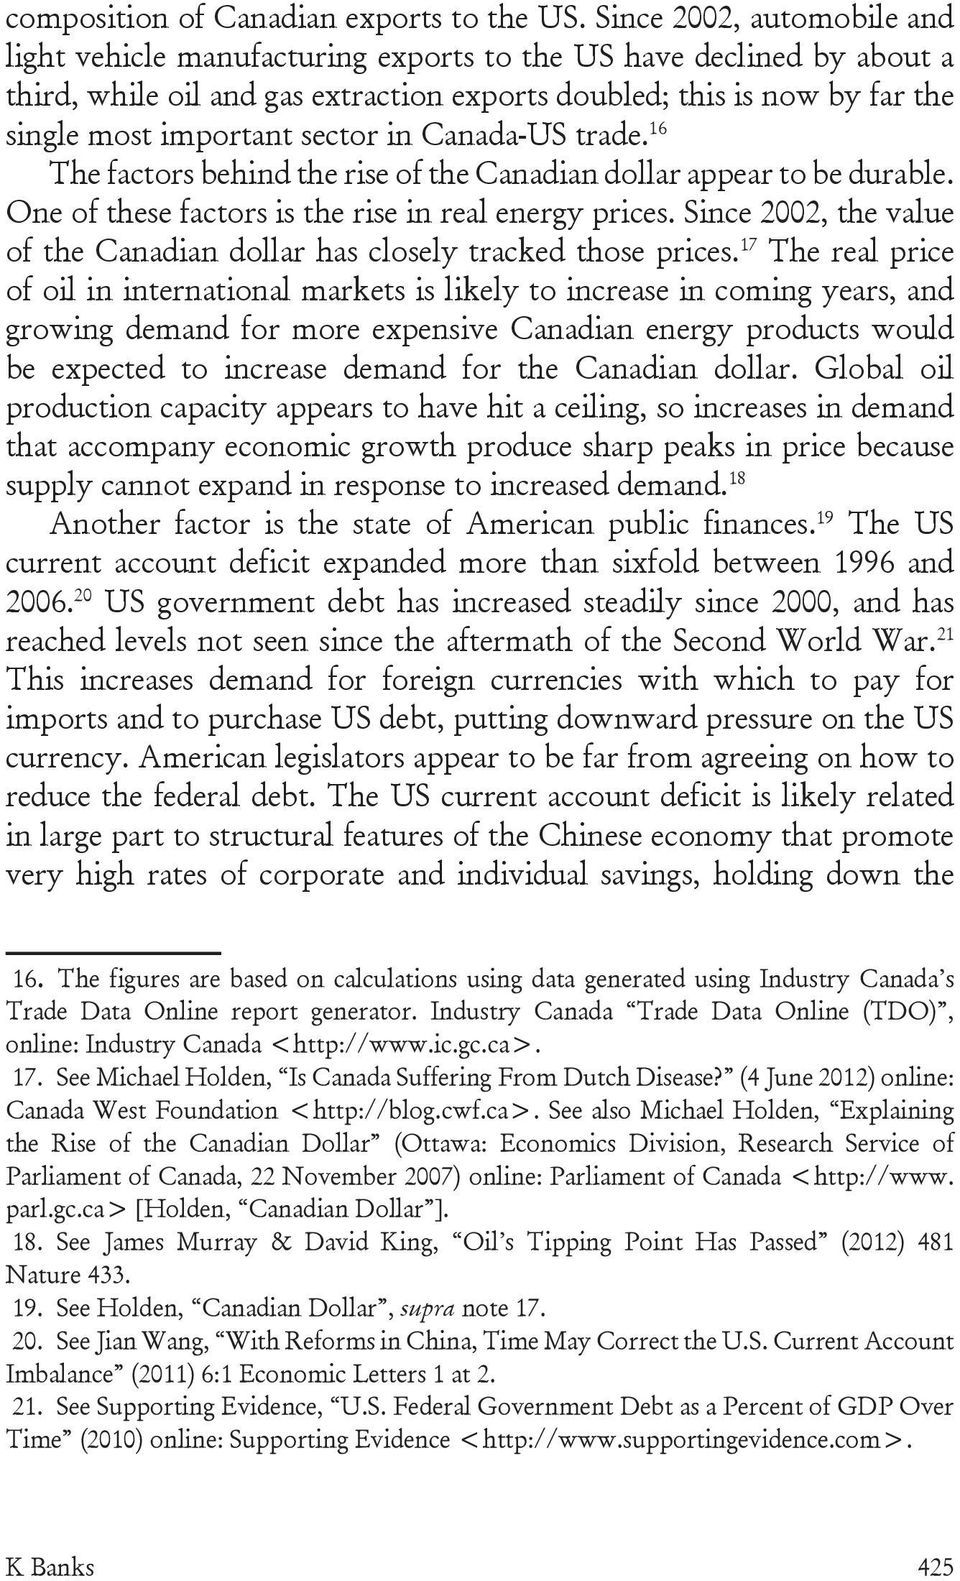 sector in Canada-US trade. 16 The factors behind the rise of the Canadian dollar appear to be durable. One of these factors is the rise in real energy prices.